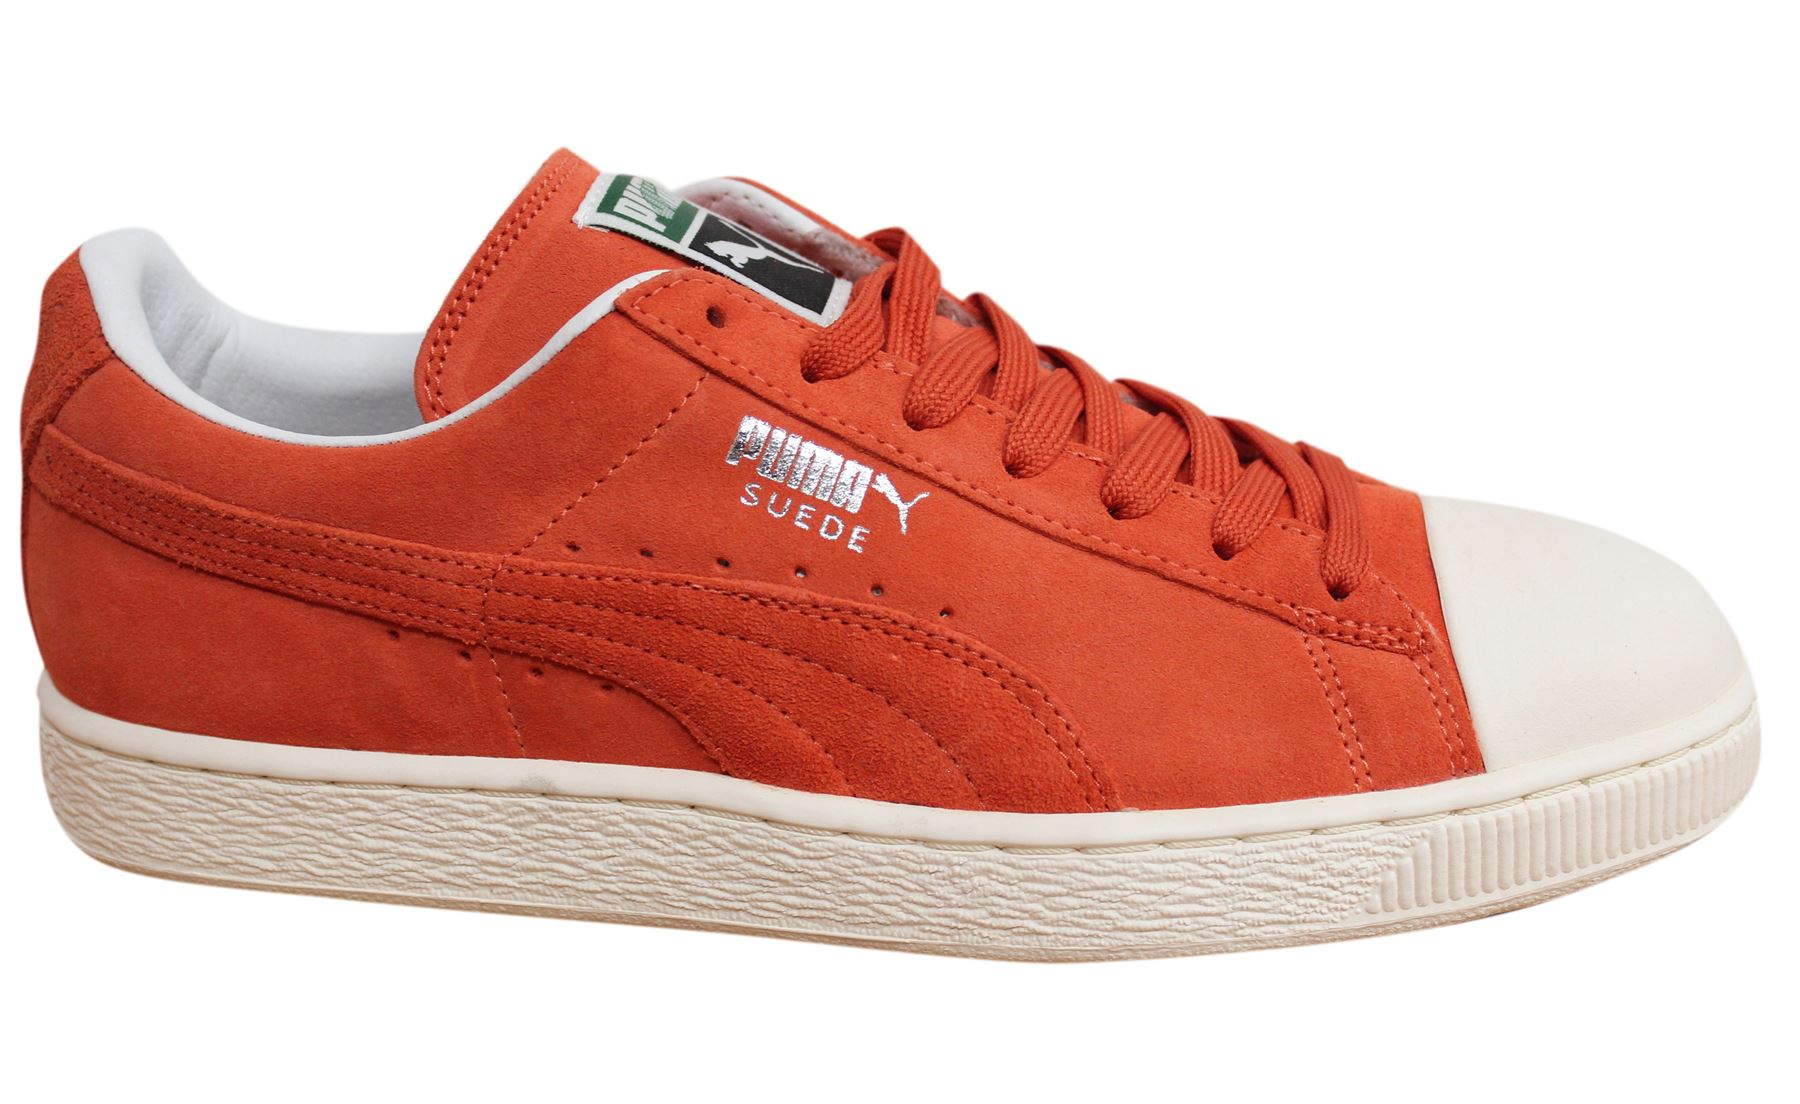 Details about Puma Suede Classic B boy Fabulous Sneakers Red Size 5.5